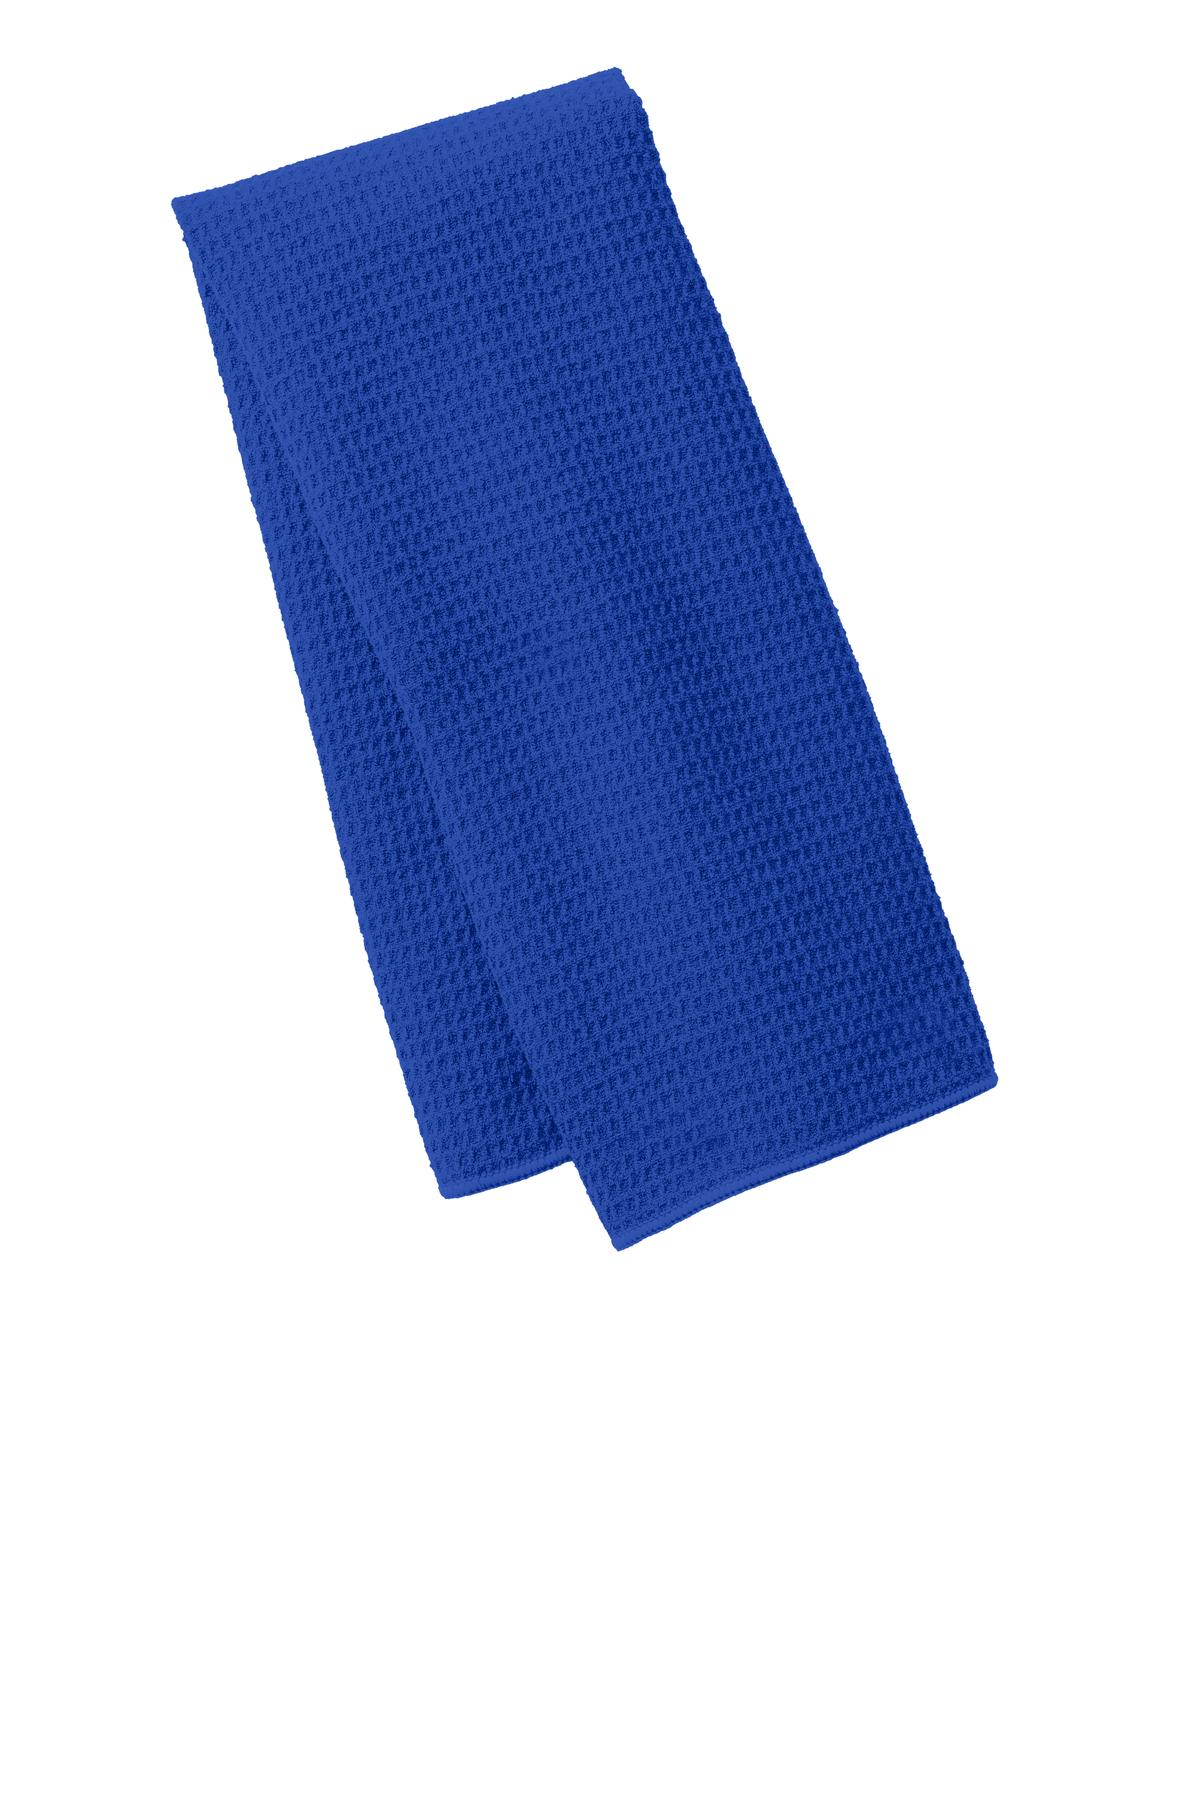 Accessories-Robes-Towels-5